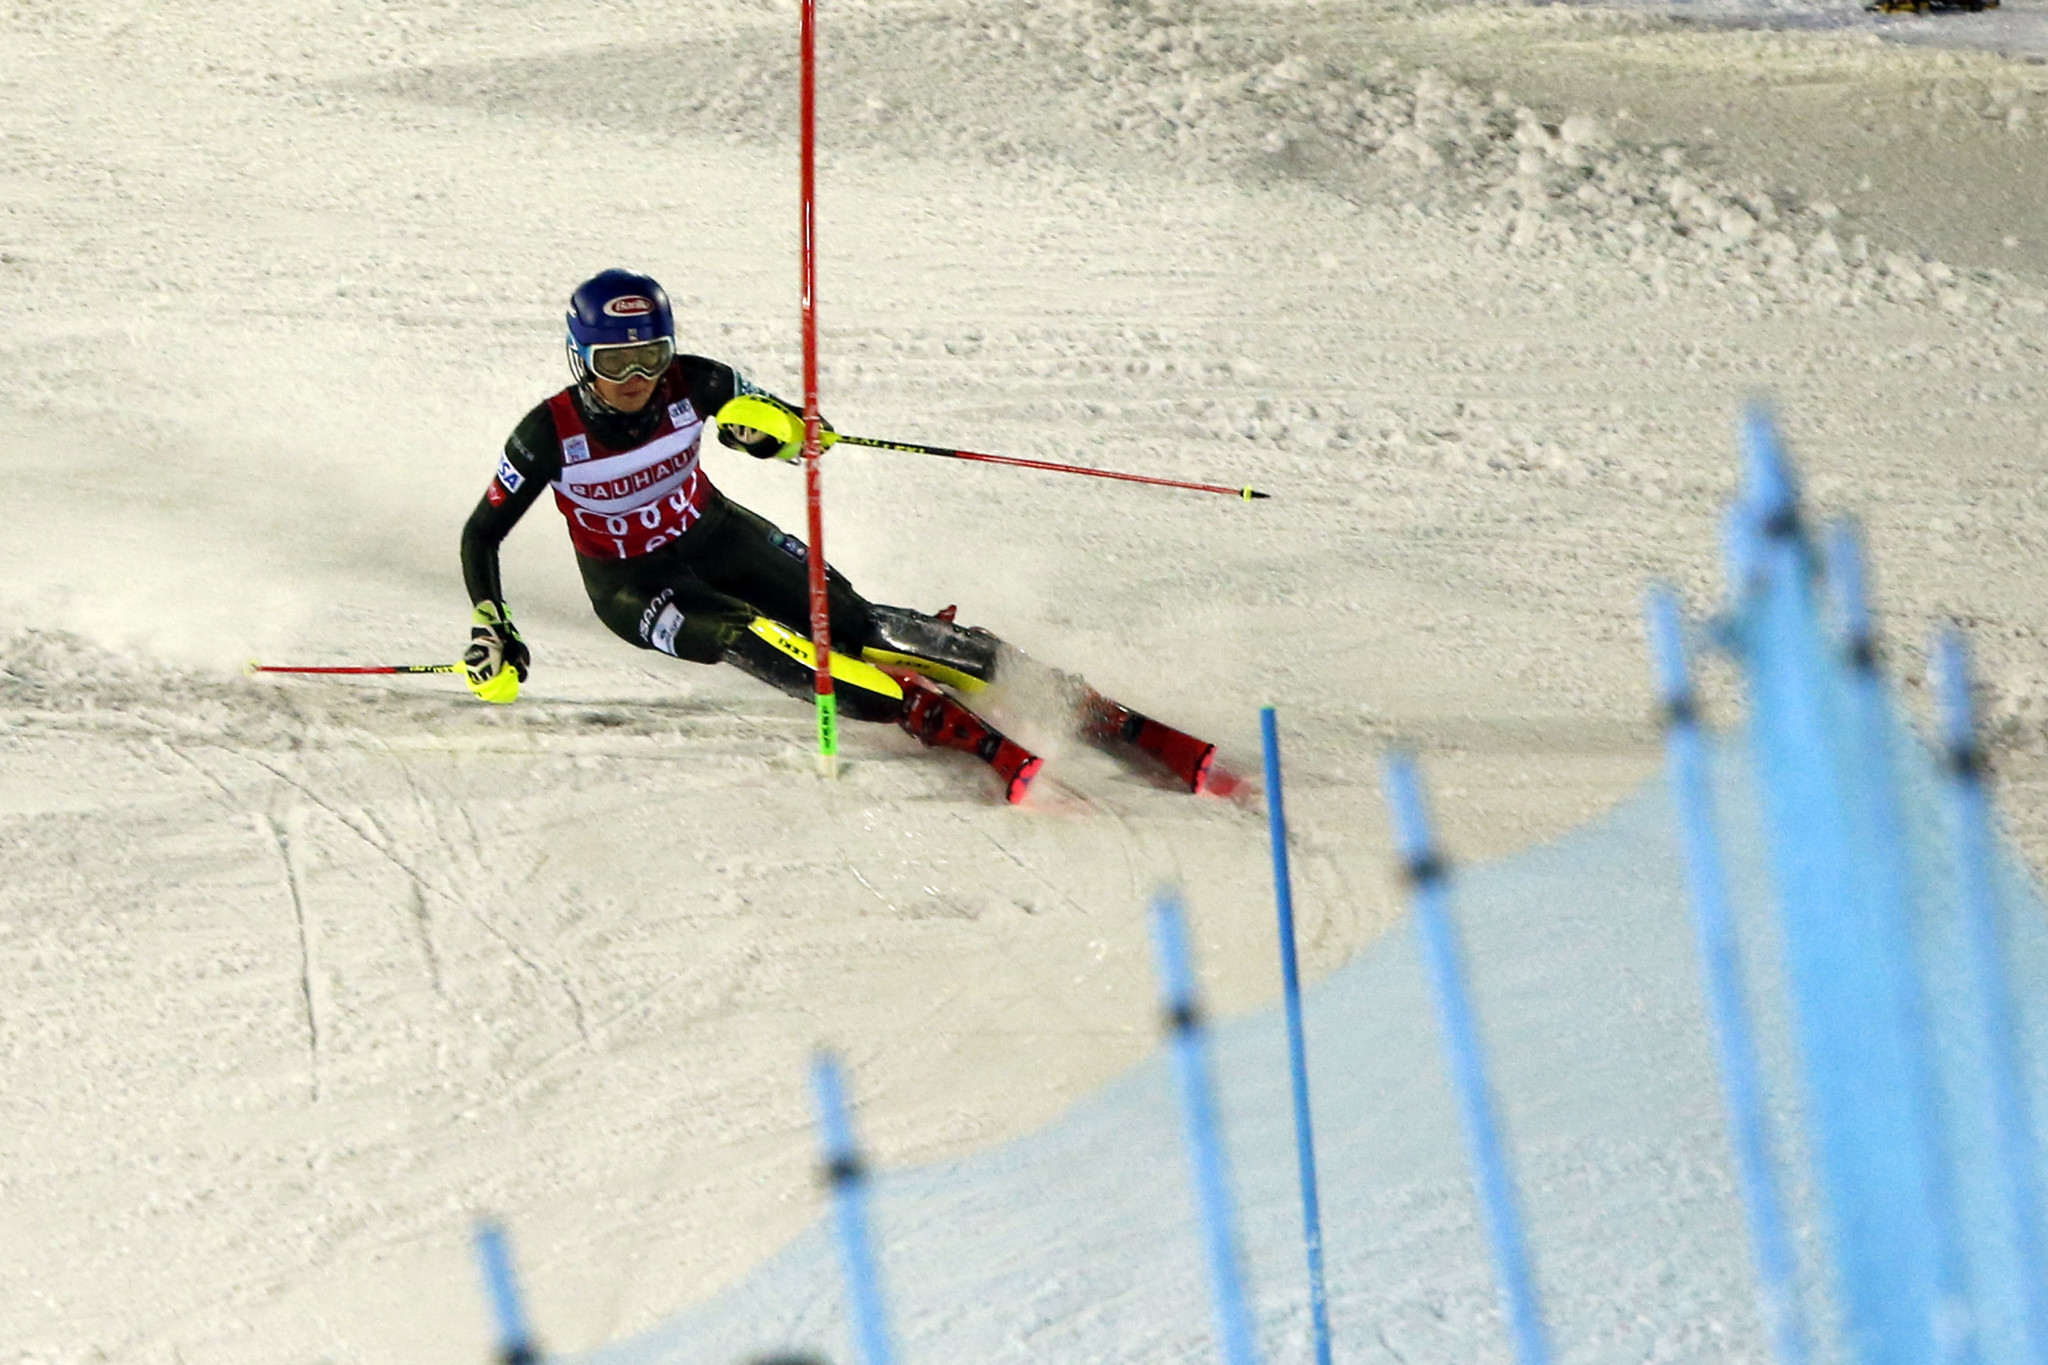 The American star overcame a first run deficit to break the record for most career slalom victories ©Getty Images